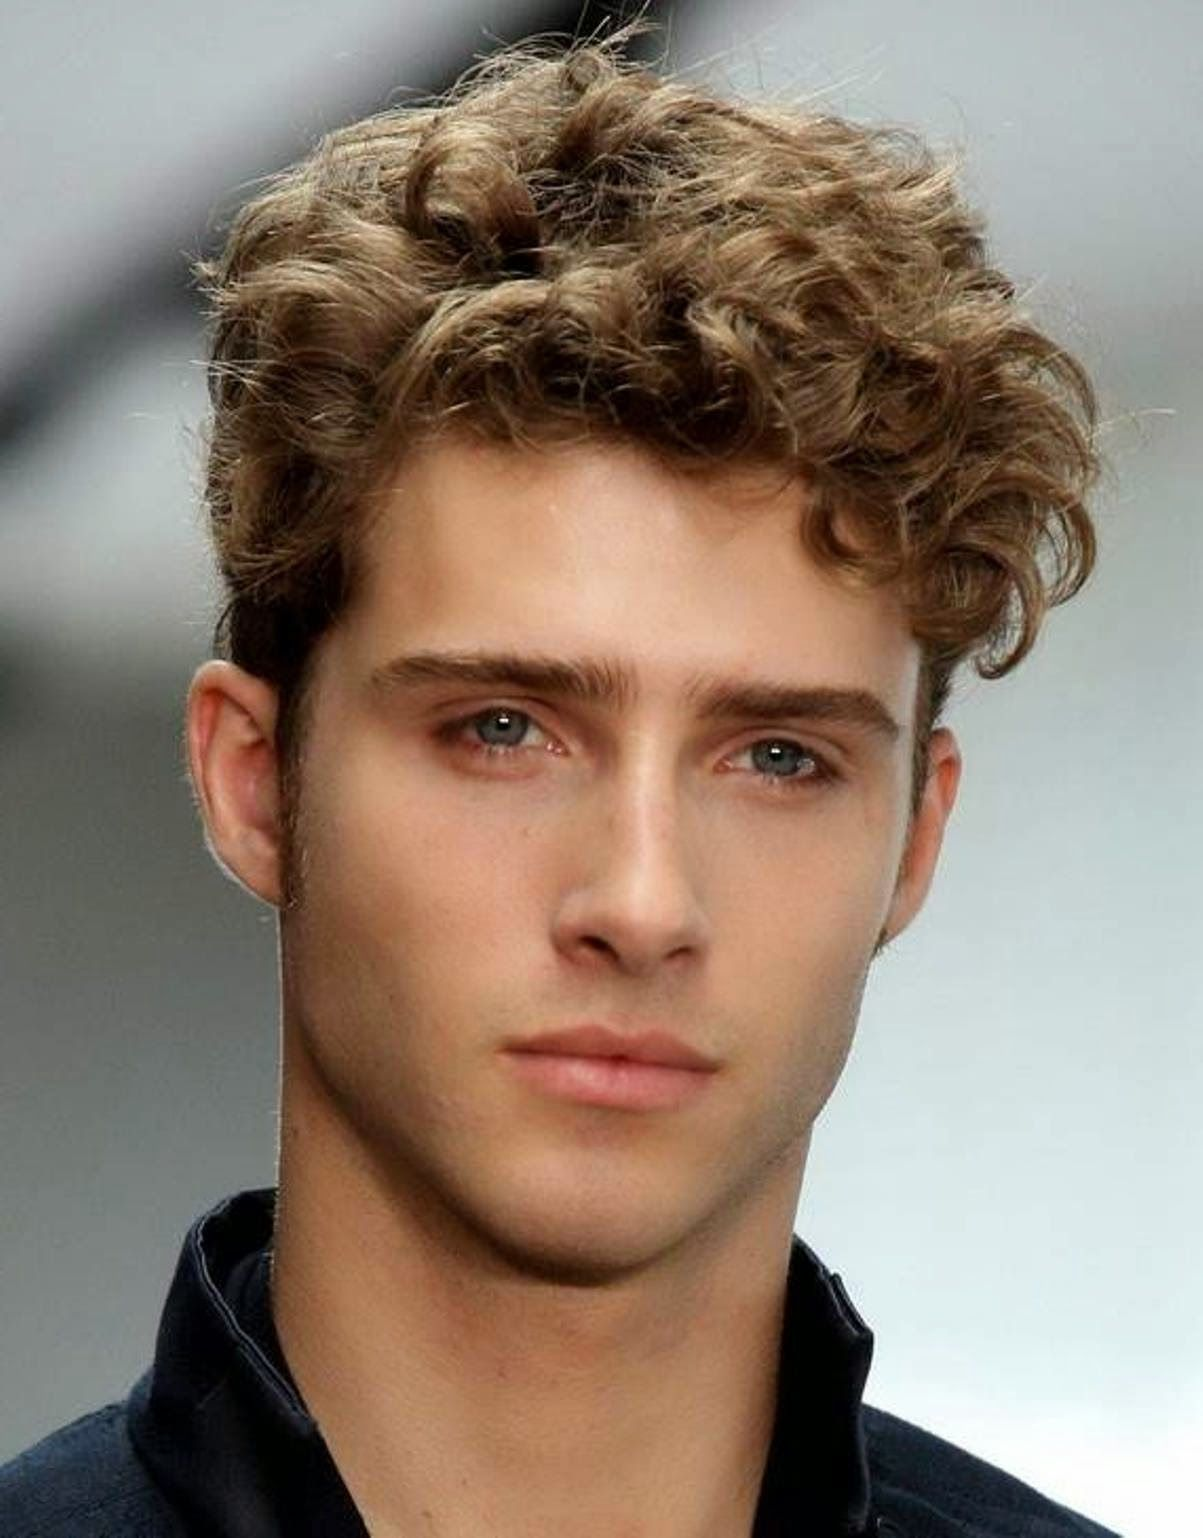 Remarkable 1000 Images About Cuts For Jasper On Pinterest Men Curly Hairstyles For Women Draintrainus